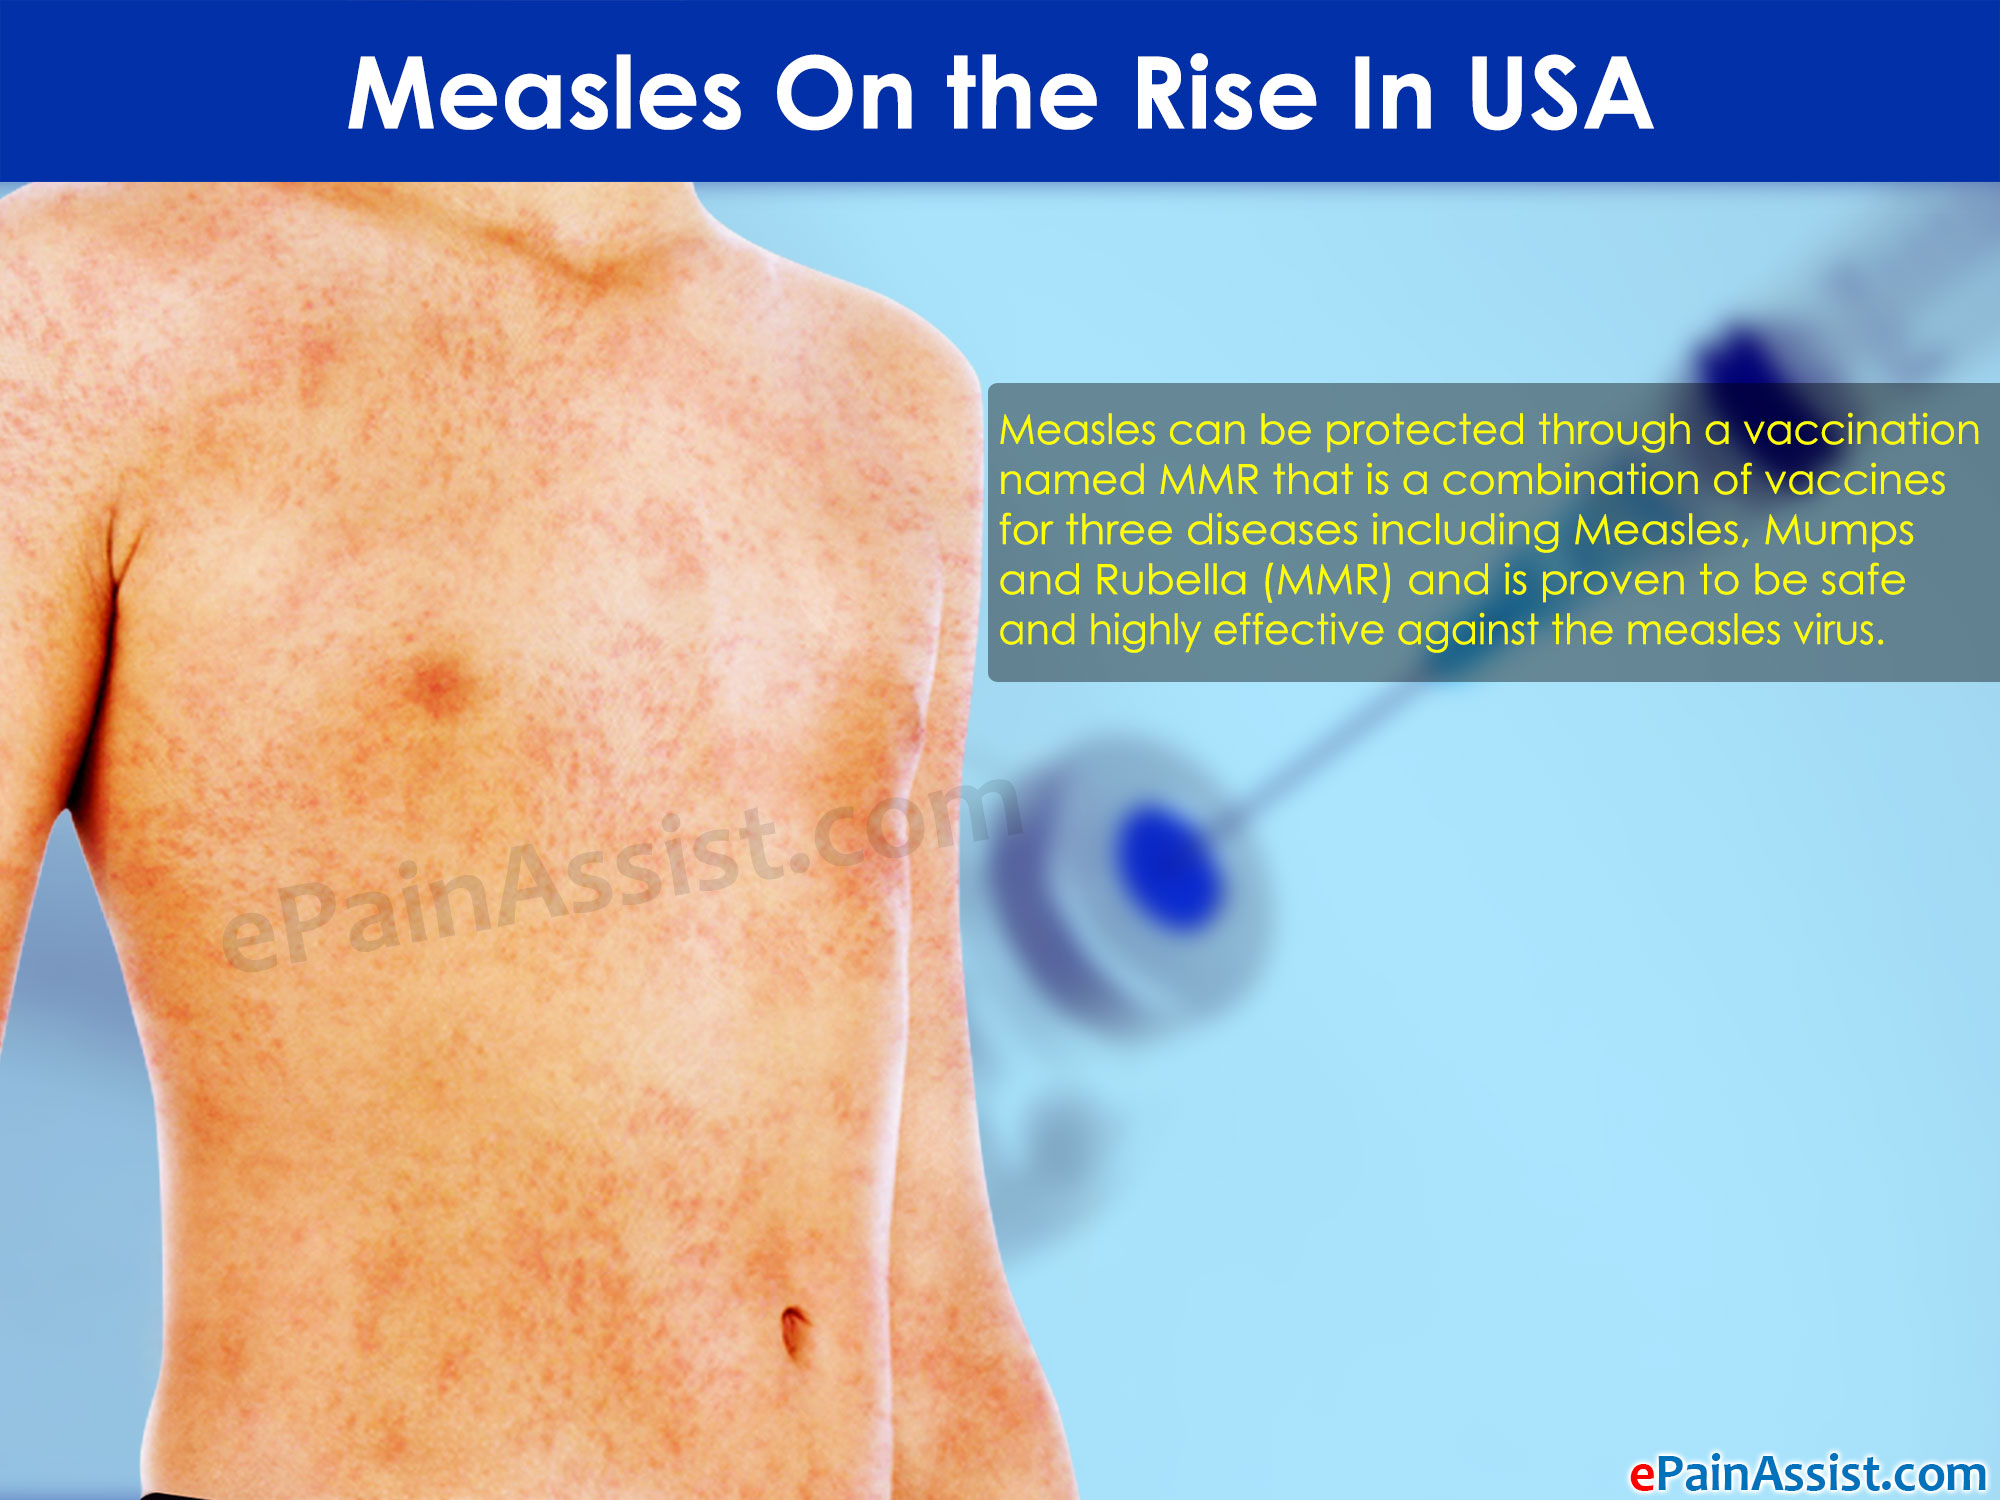 Measles On the Rise In USA